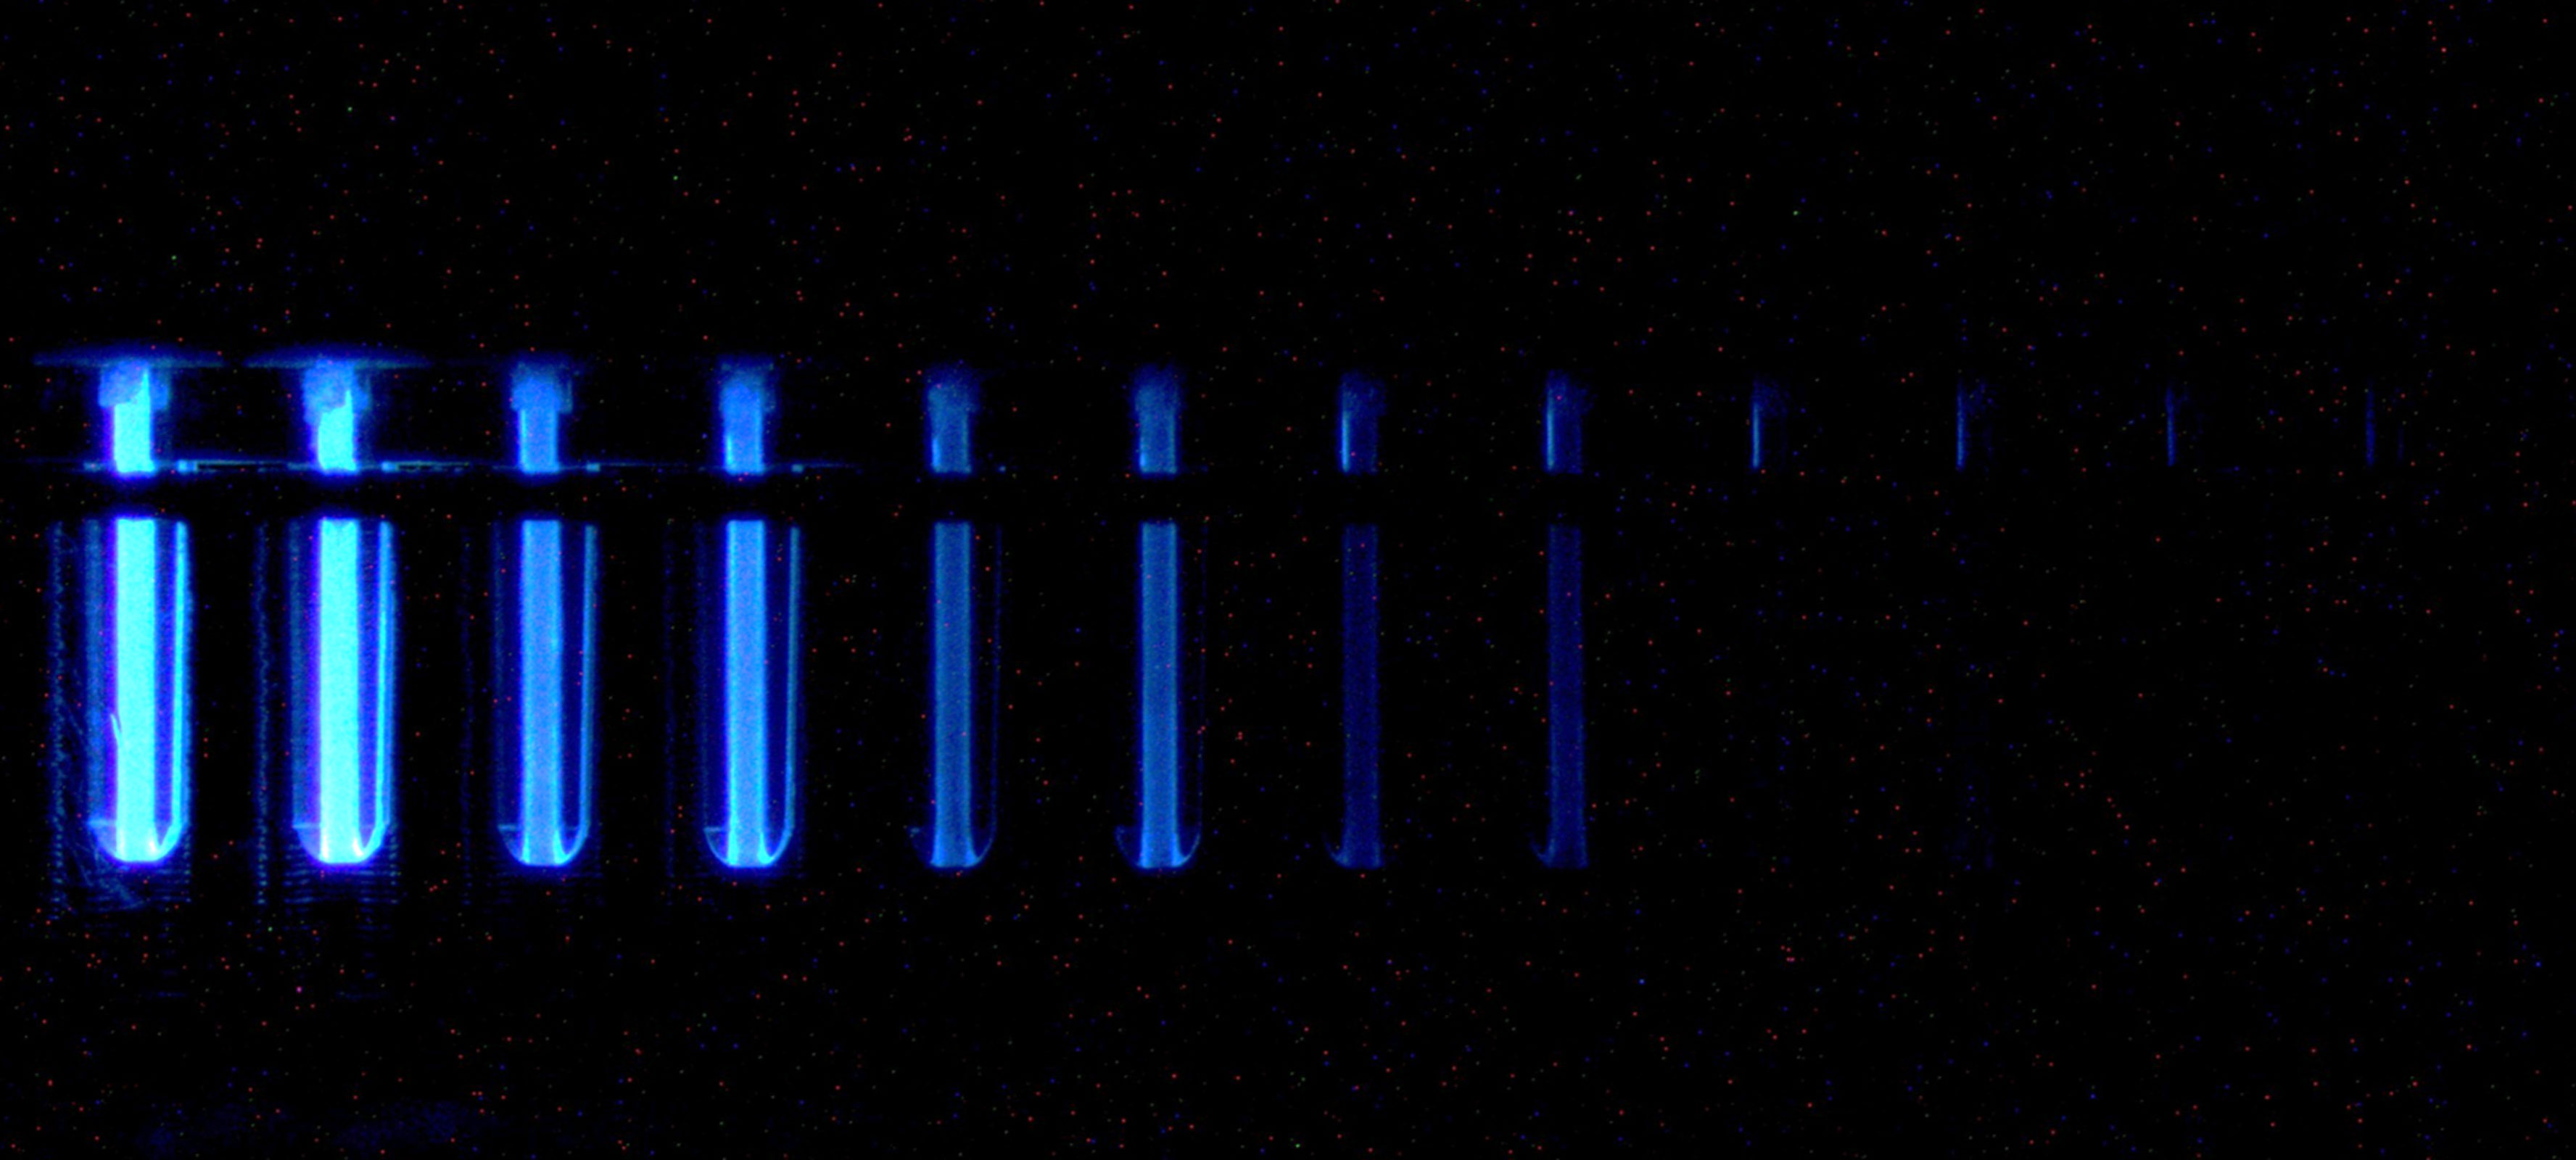 An example of the chemiluminescent imagery used to measure the concentration of SARS-CoV-2 antibodies in the convalescent plasma of COVID-19 donors using a microfluidic ELISA assay.